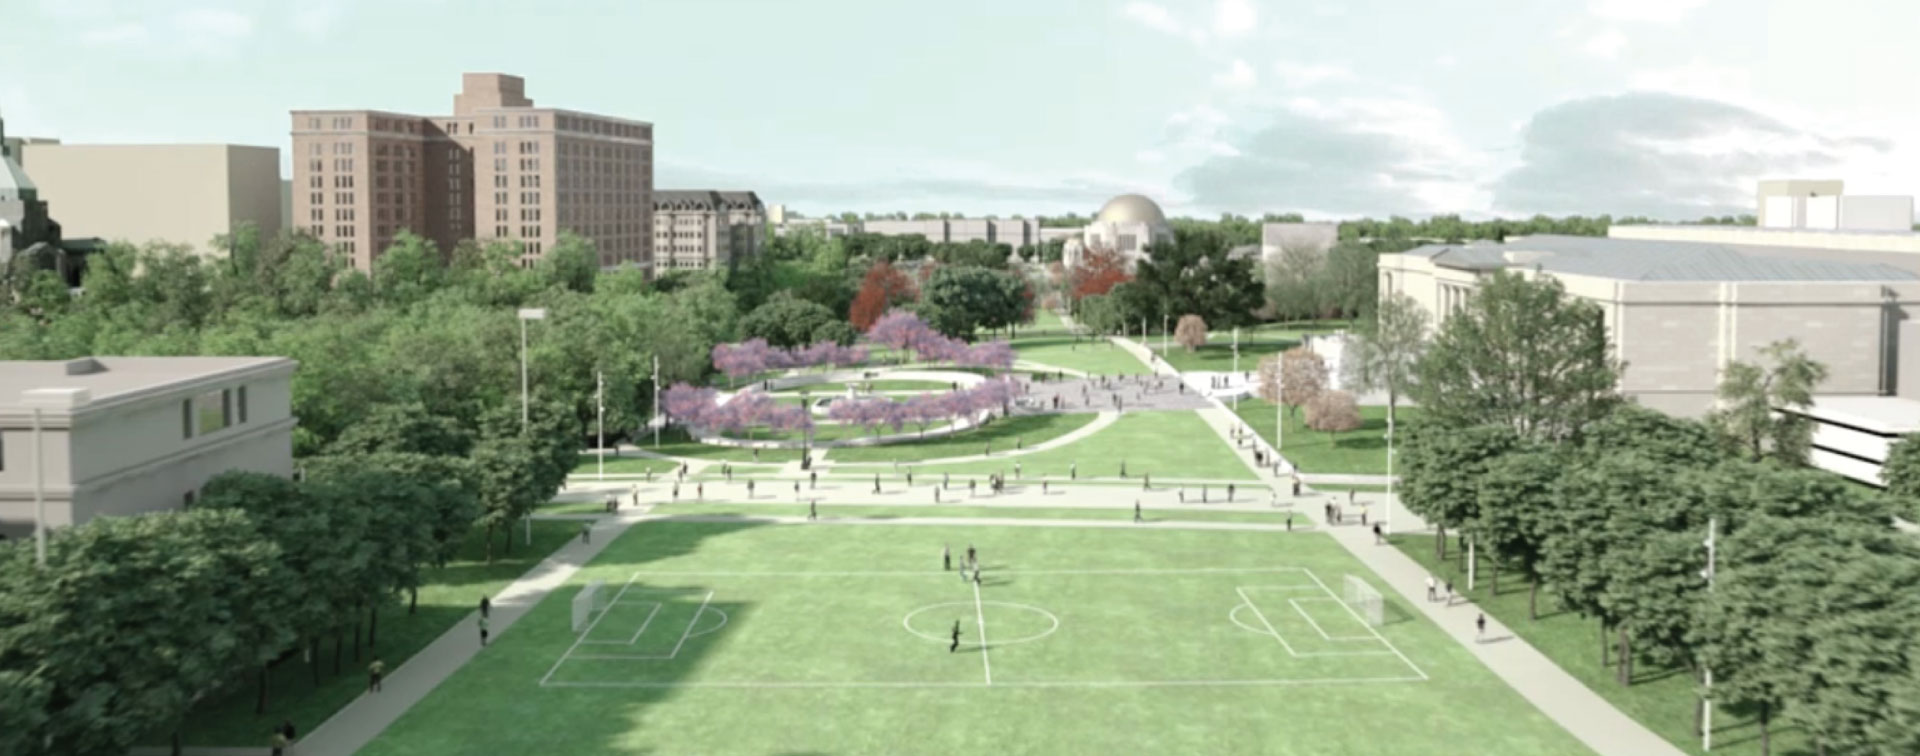 Rendering of the new green space